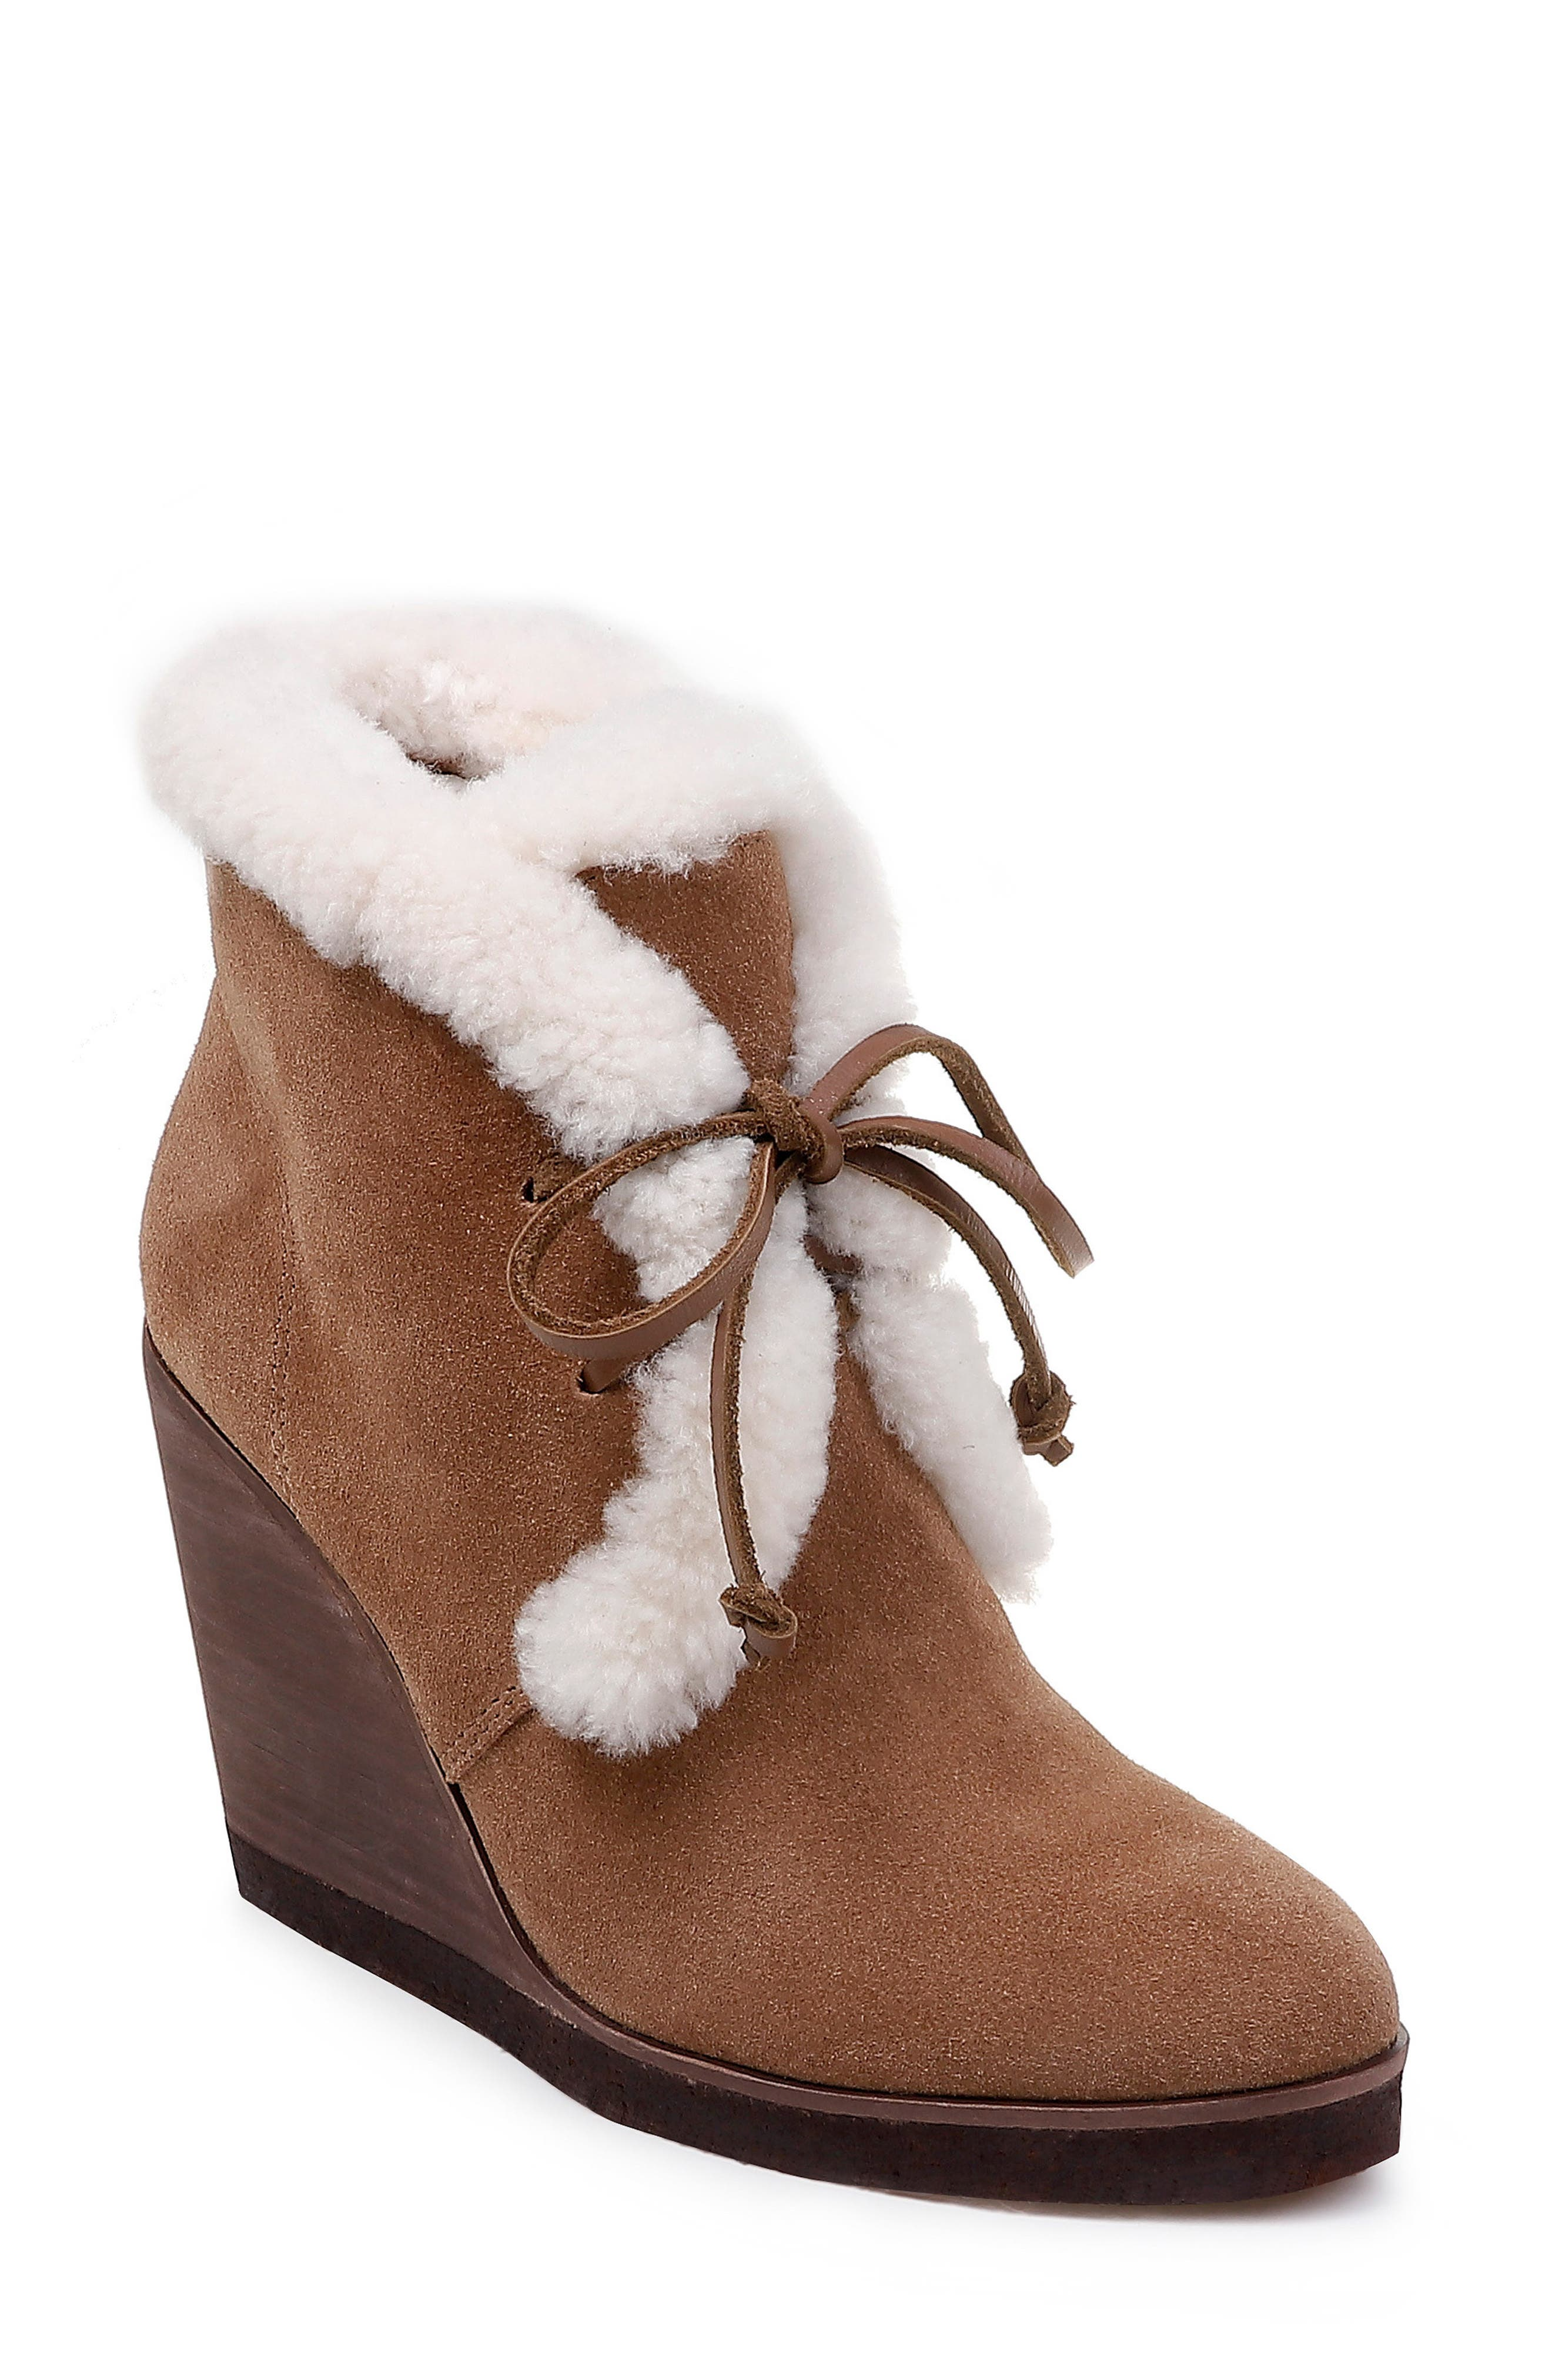 Catalina Faux-Shearling Wedge Bootie,                         Main,                         color, LIGHT BROWN SUEDE